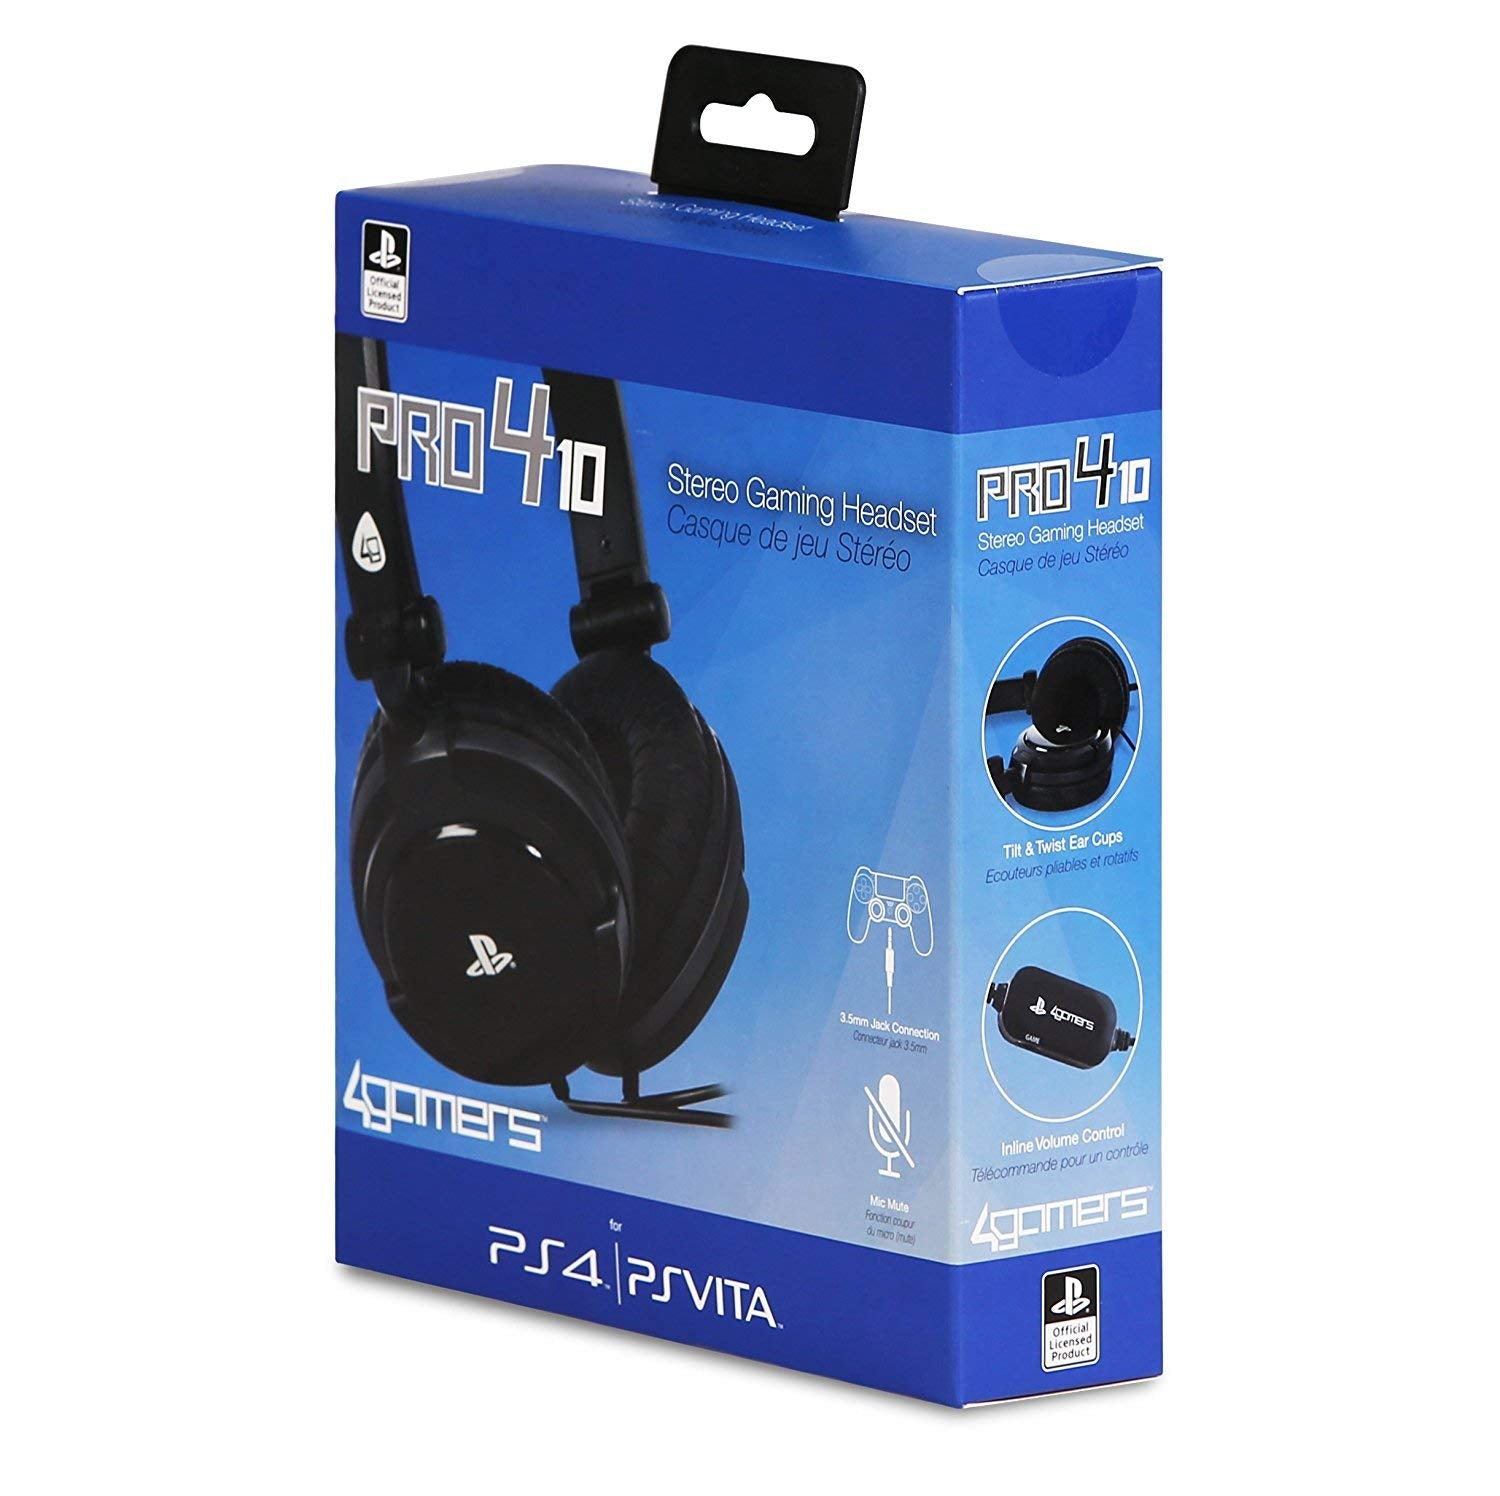 PRO4-10 Officially Licensed Stereo Gaming Headset - Black PS4/PSVita